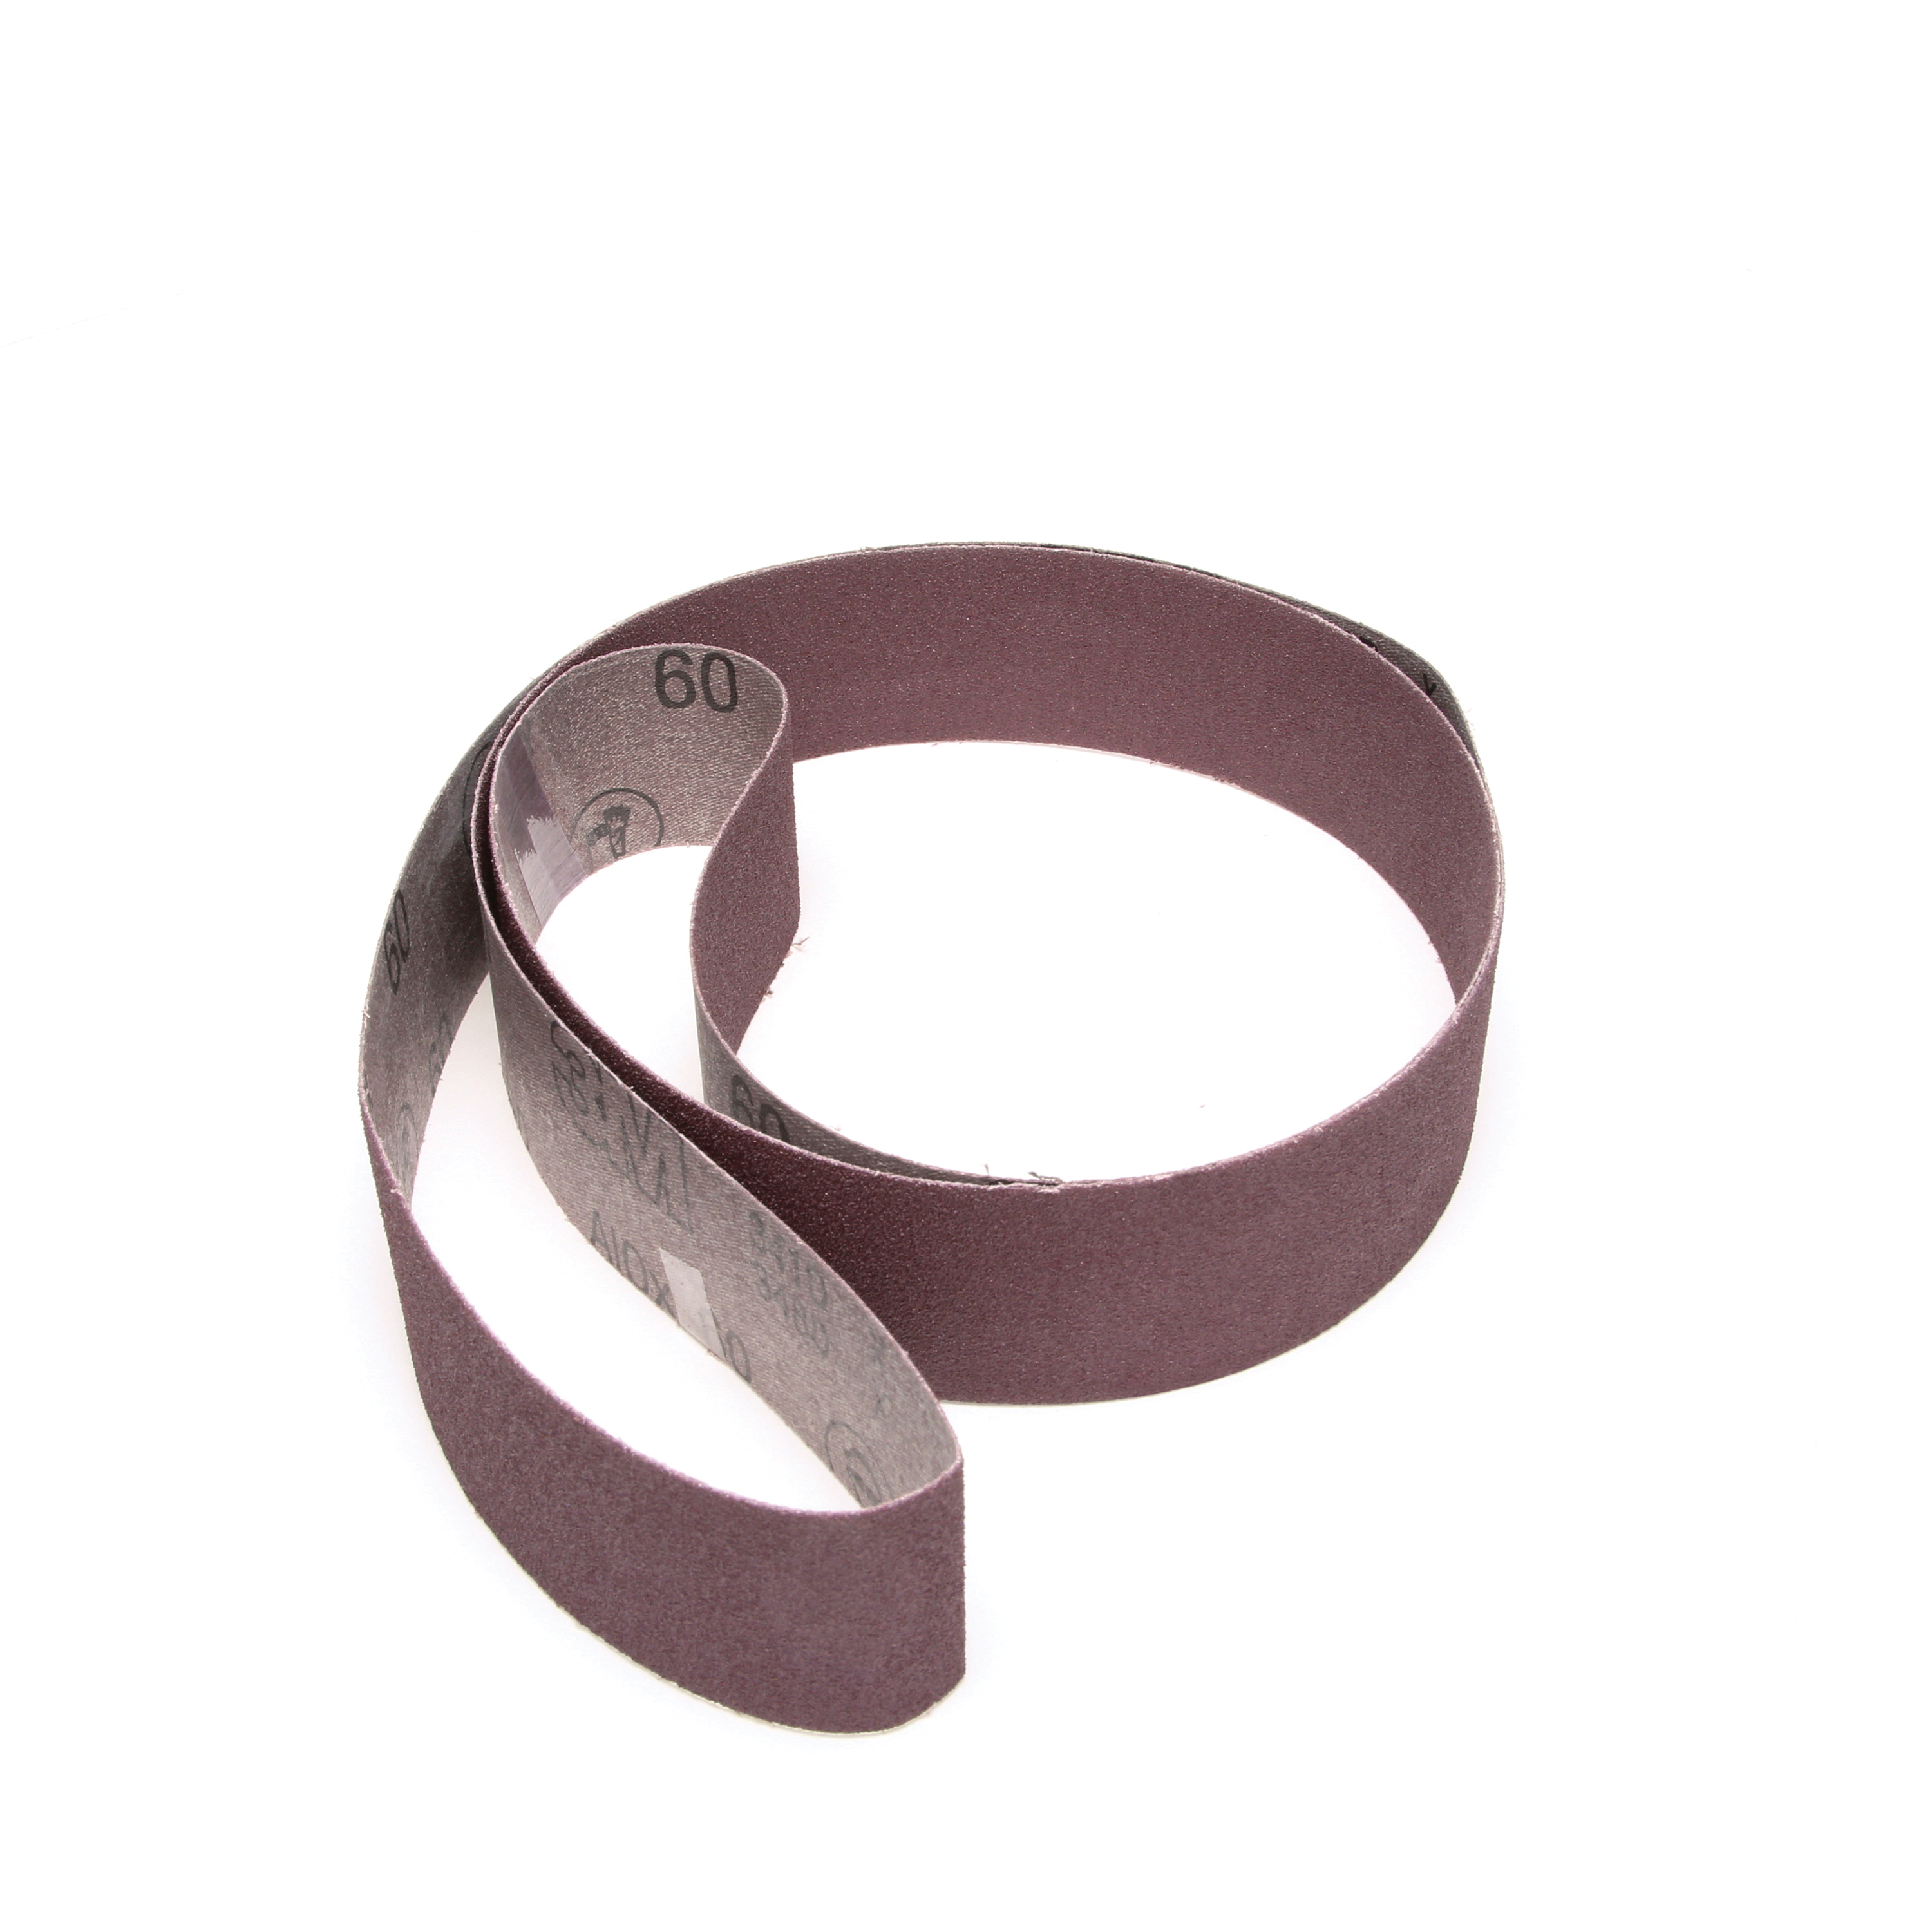 3M™ 051144-26316 Narrow Coated Abrasive Belt, 2 in W x 72 in L, 60 Grit, Medium Grade, Aluminum Oxide Abrasive, Cloth Backing